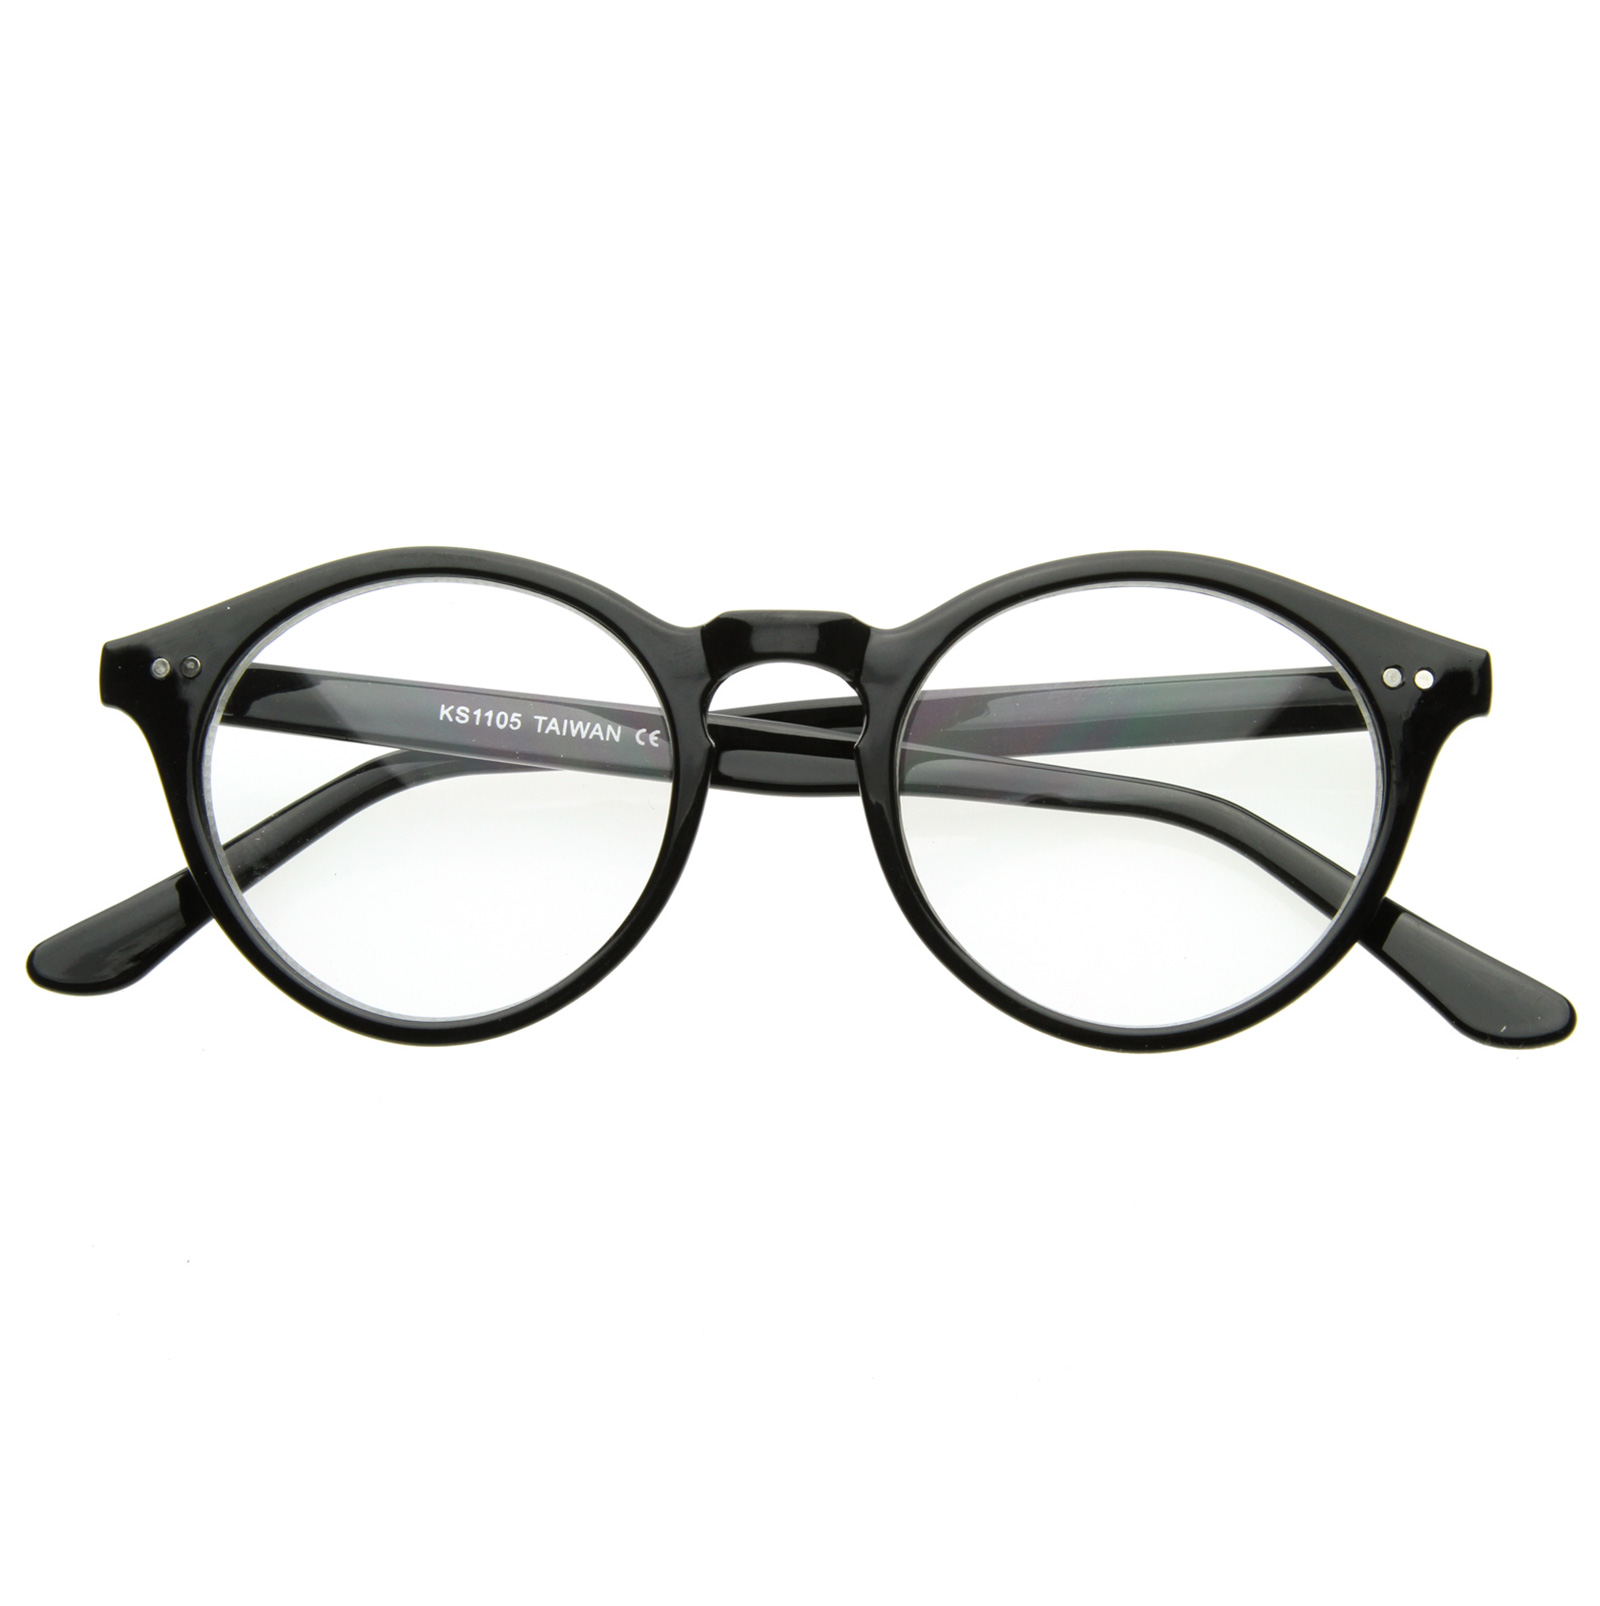 Vintage-Inspired-Spectacles-Clear-Lens-UV400-Small-Circle-Round-Glasses-8403-NEW